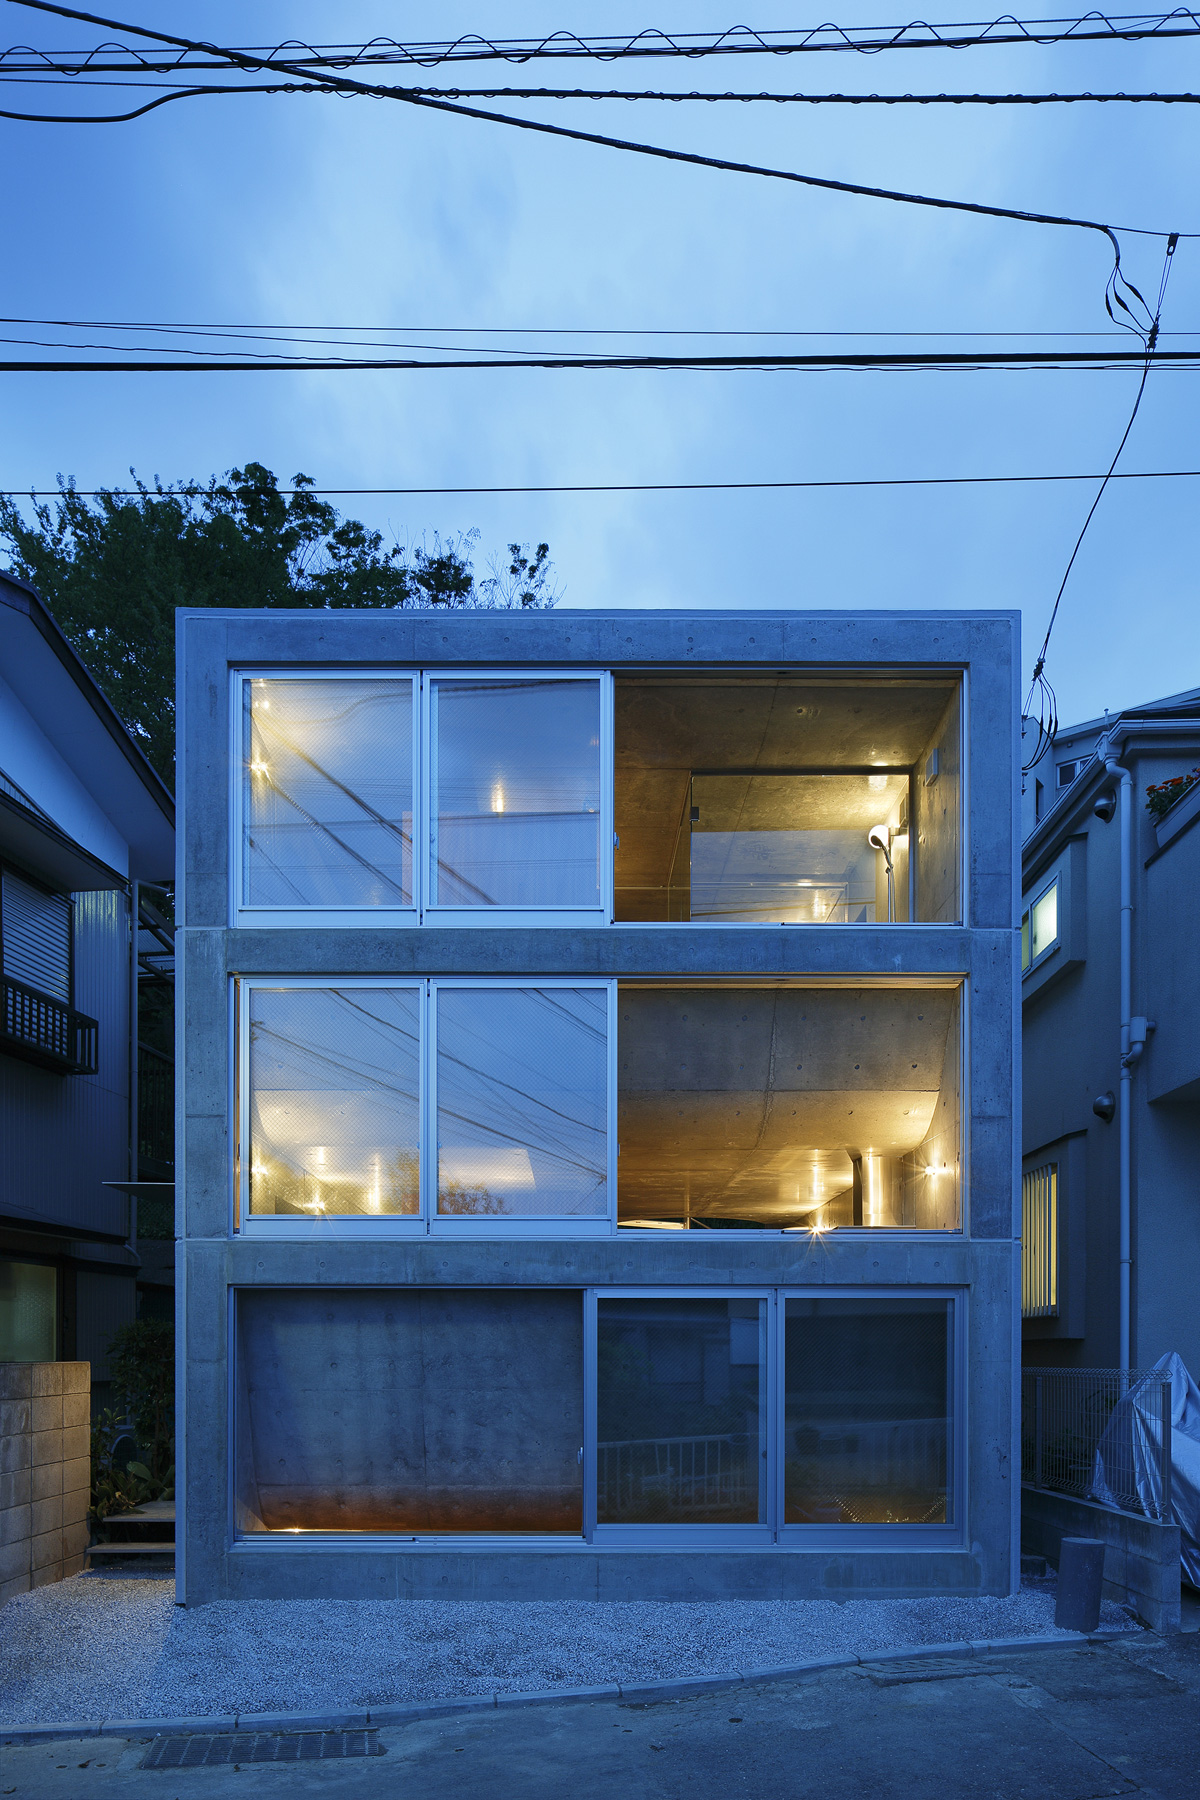 House in Byoubugaura / Takeshi Hosaka (13)